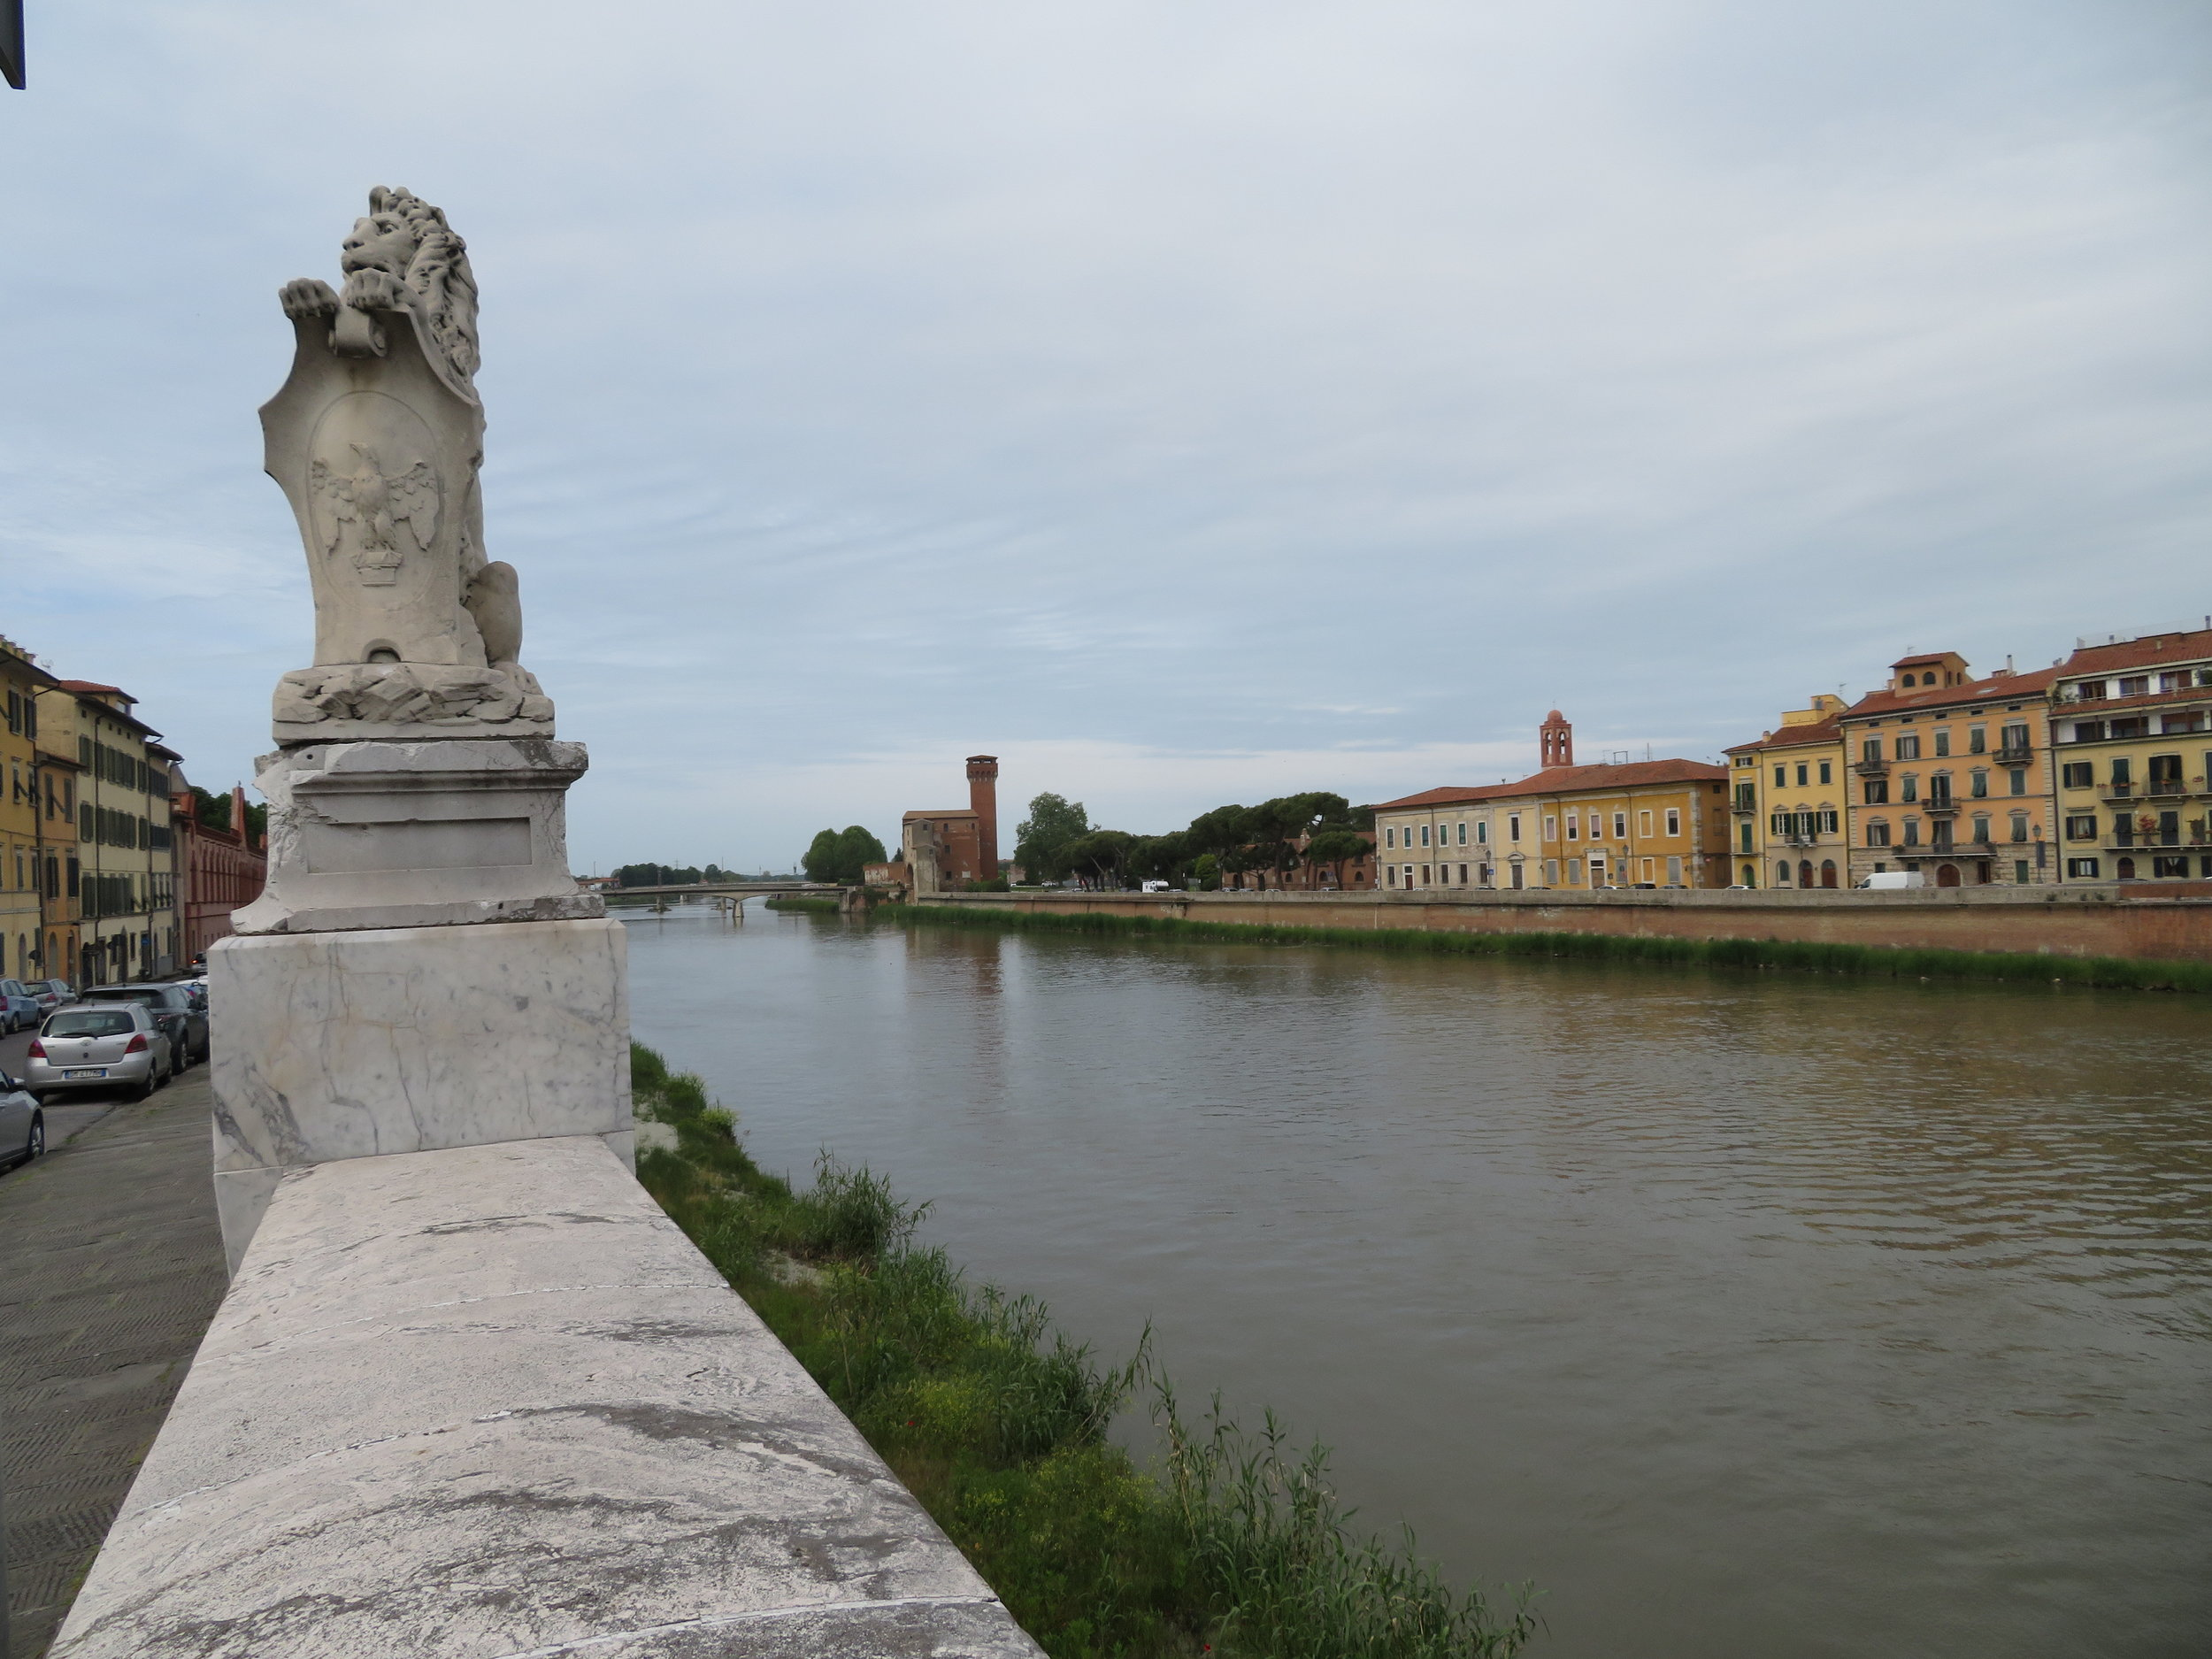 The River Arno runs through Pisa on its way to the Ligurian Sea (part of the Mediterranean).